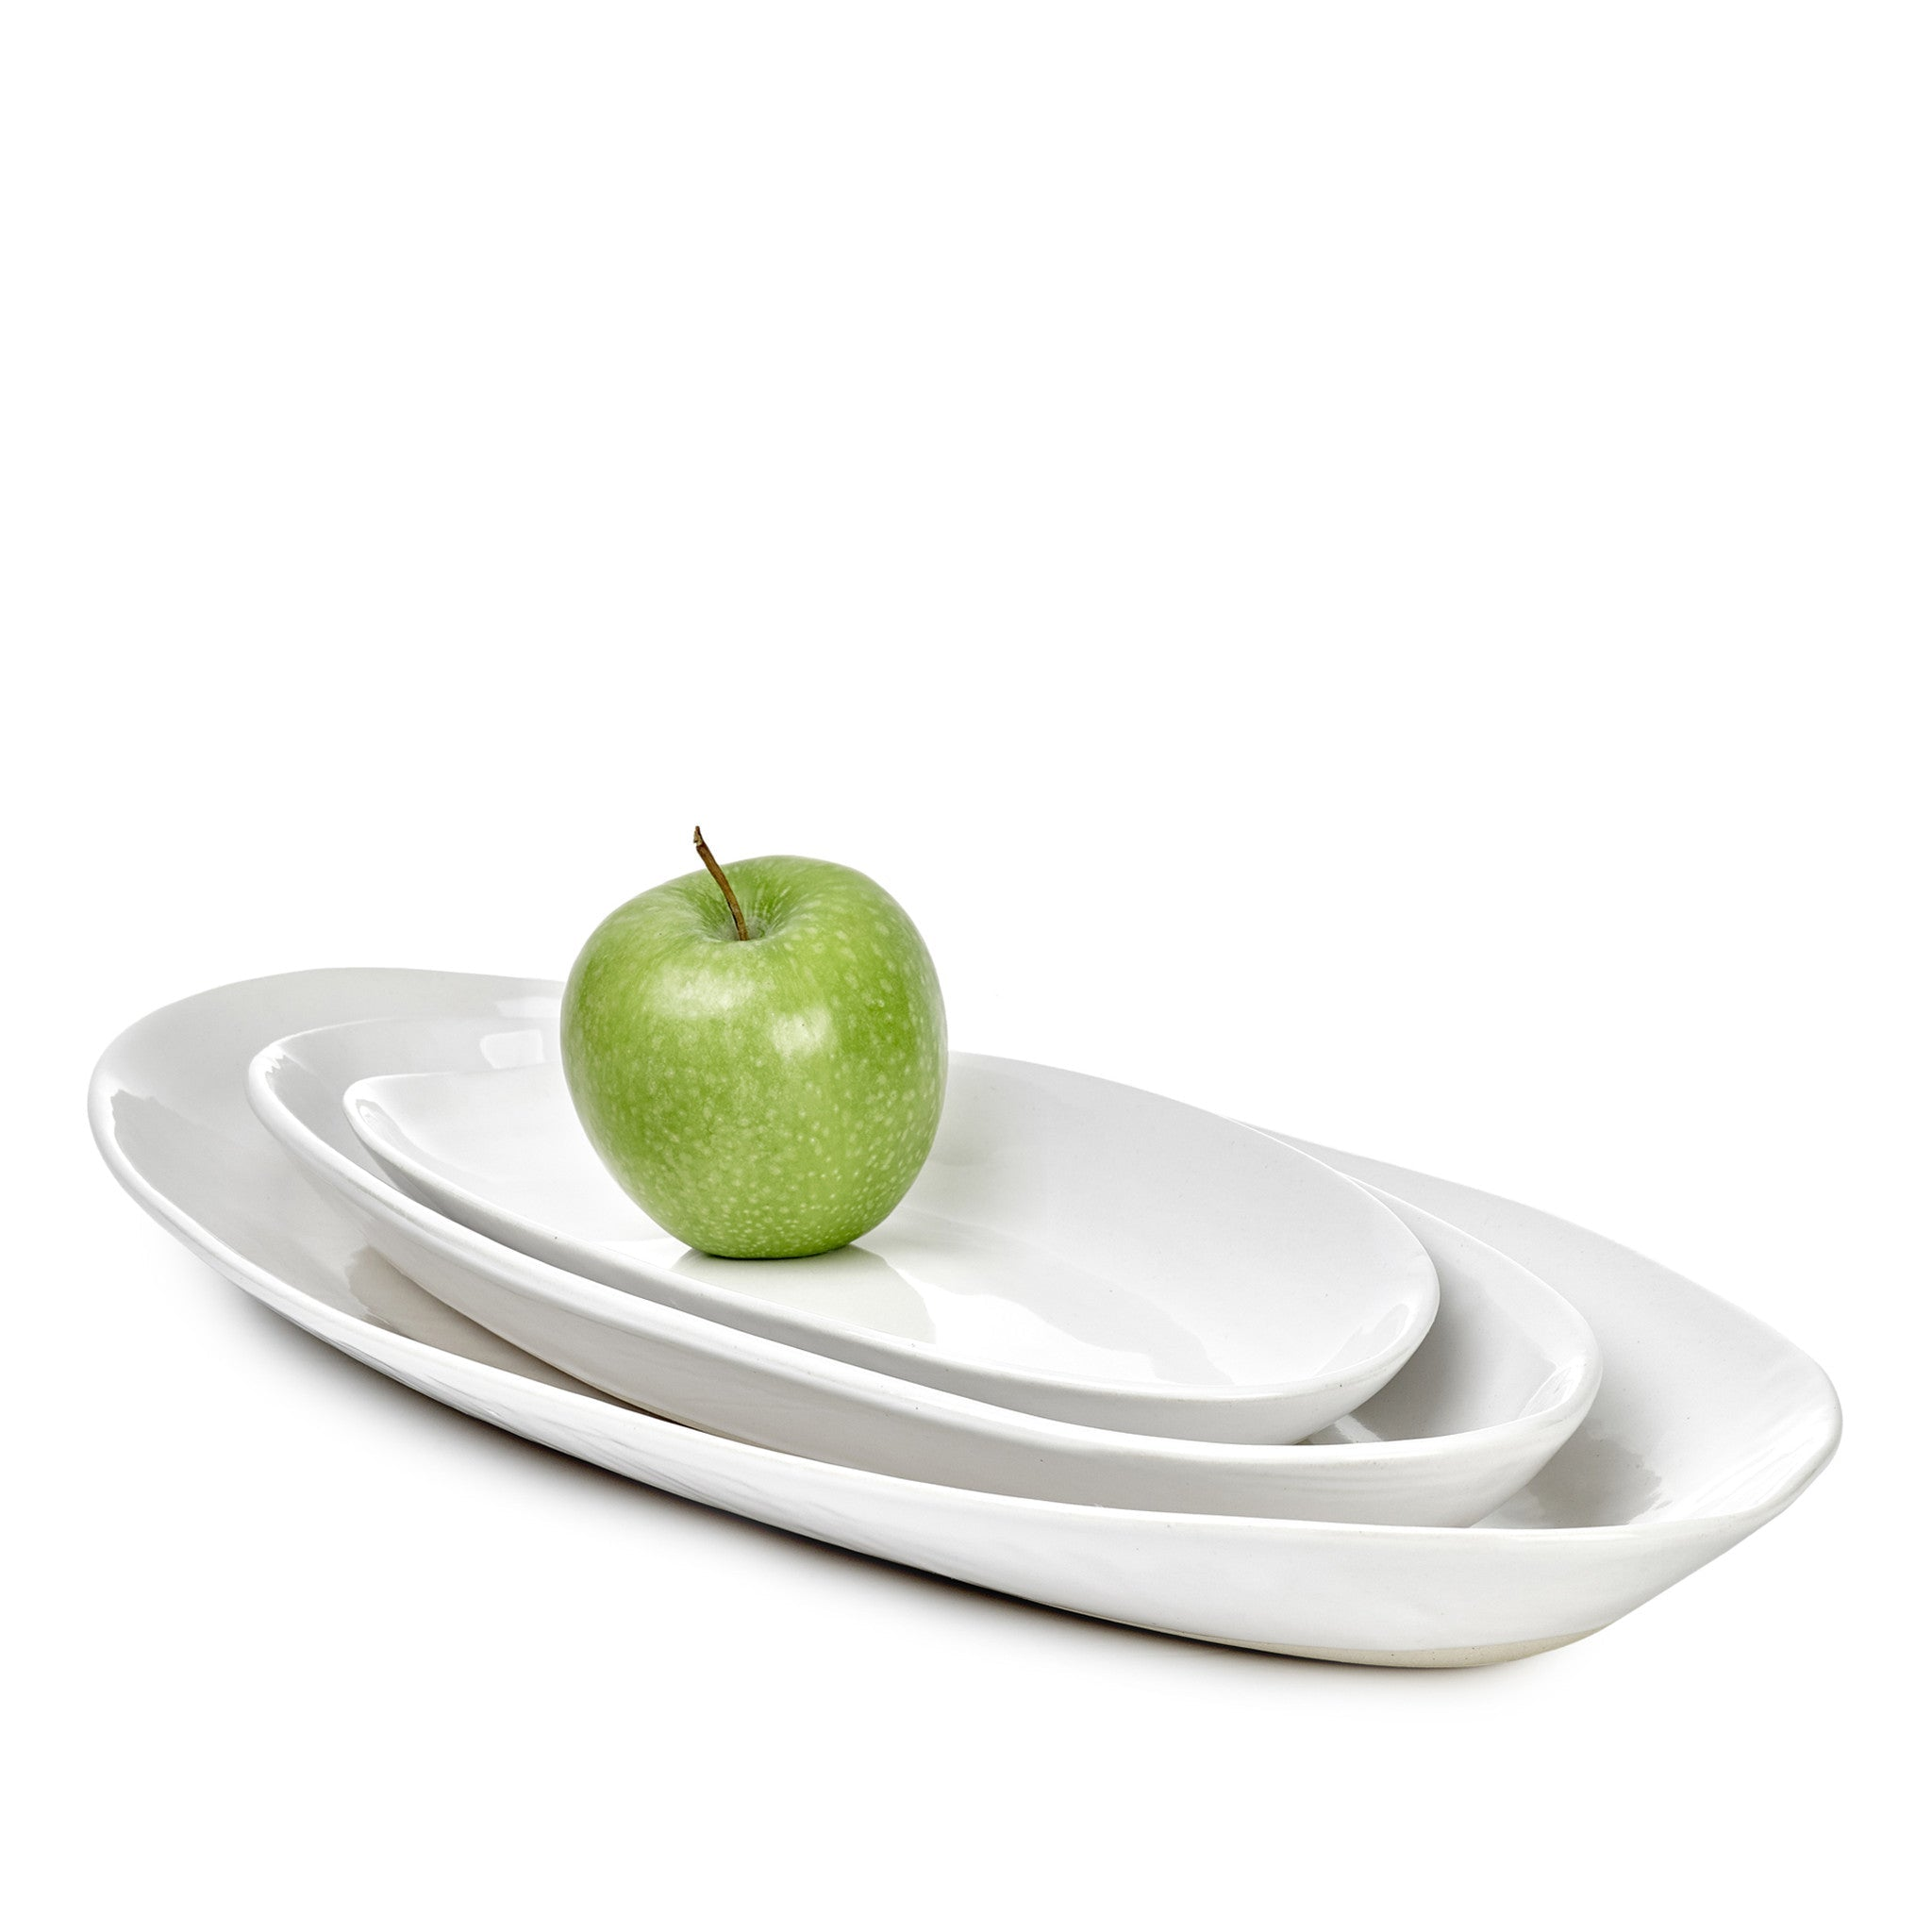 Wonki Ware Small Bamboo Platter in White, 35cm